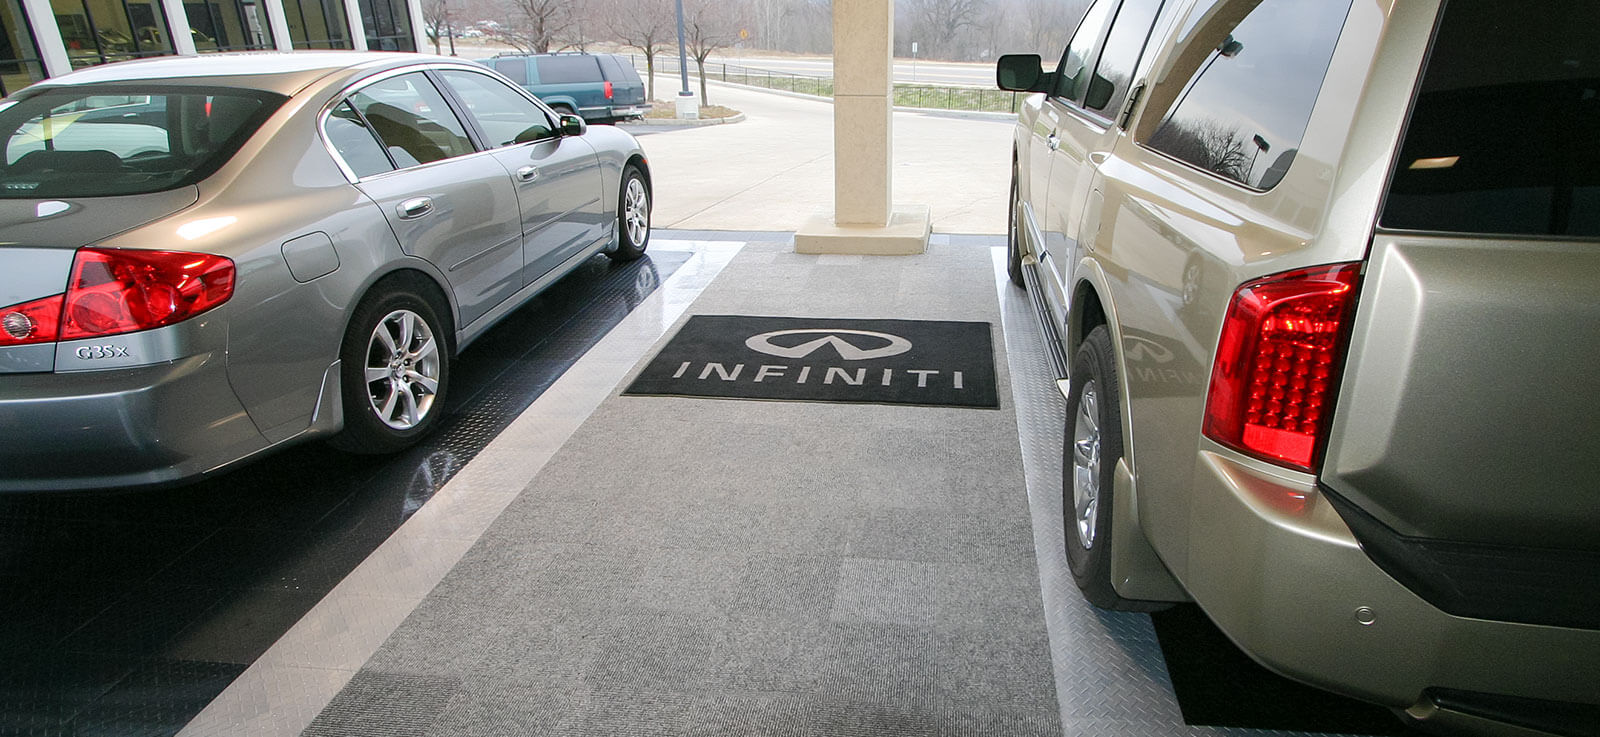 Infinity delivery bays with Snap-Carpet